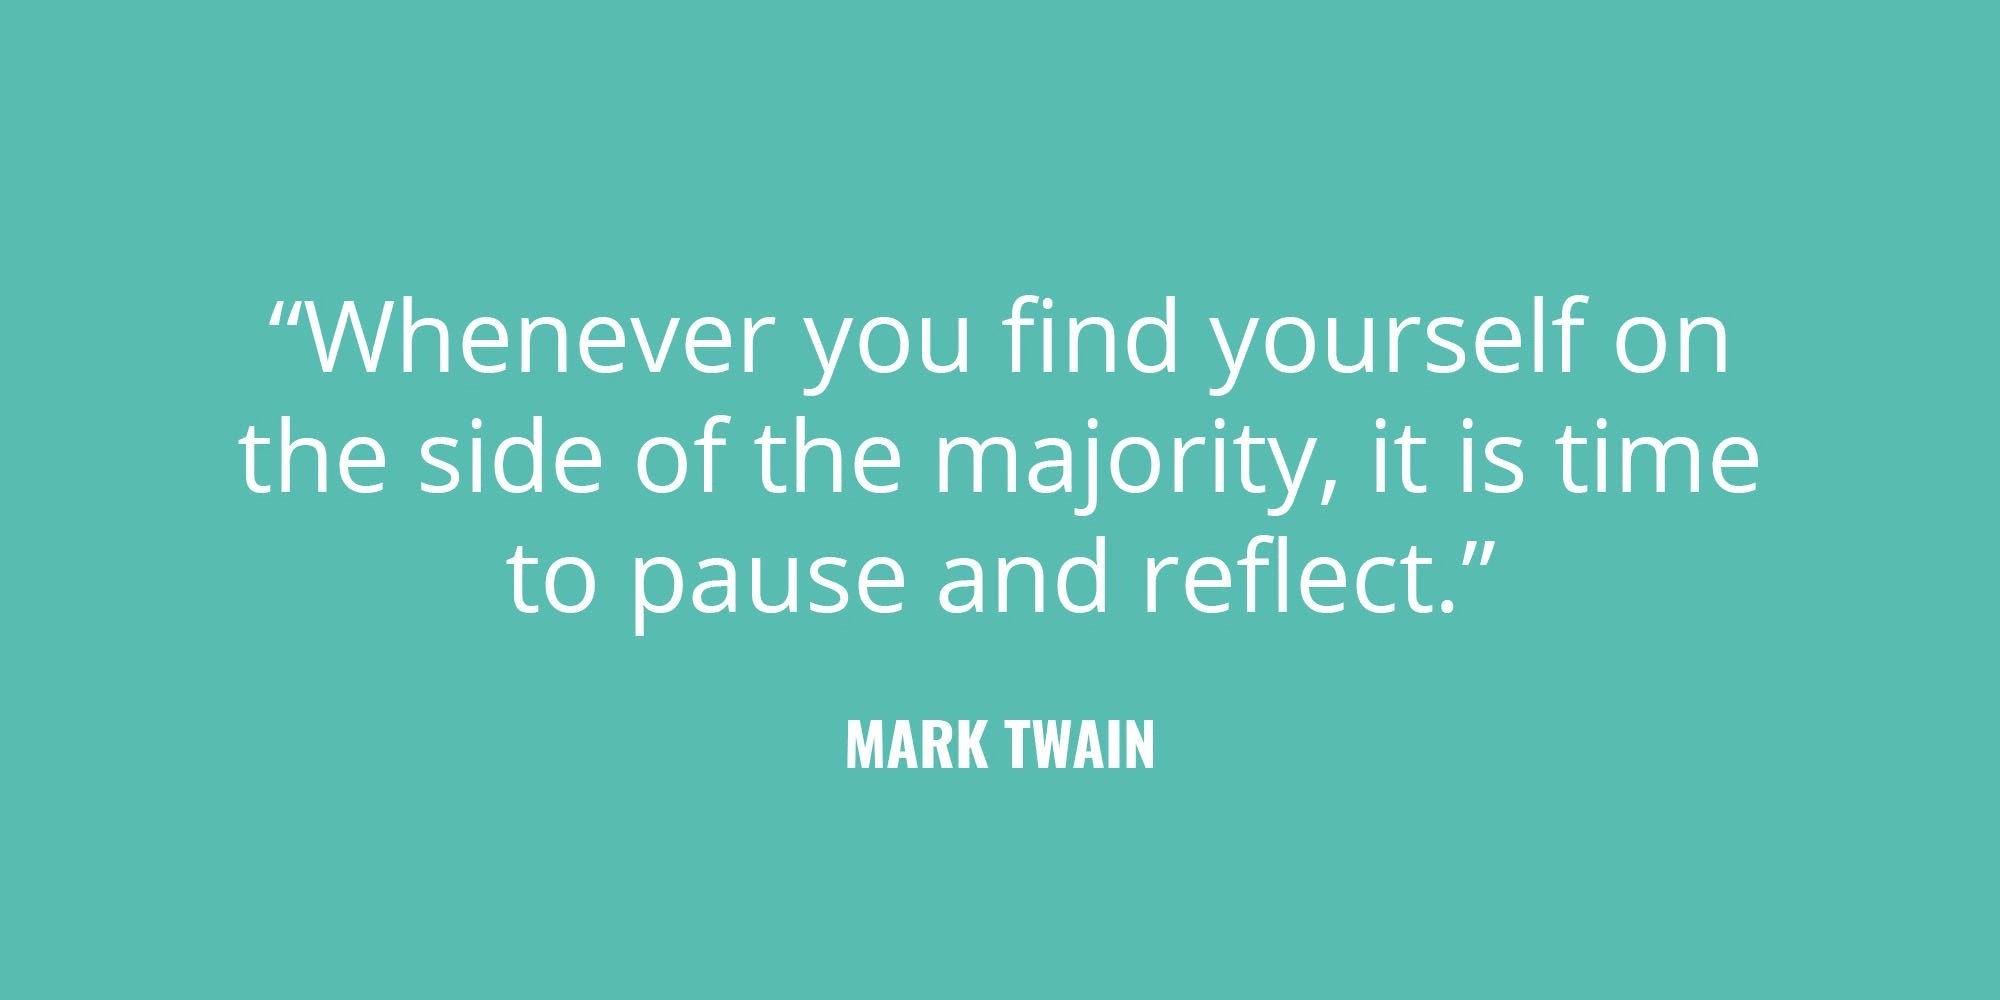 """Whenever you find yourself on the side of the majority, it is time to pause and reflect."" -Mark Twain"